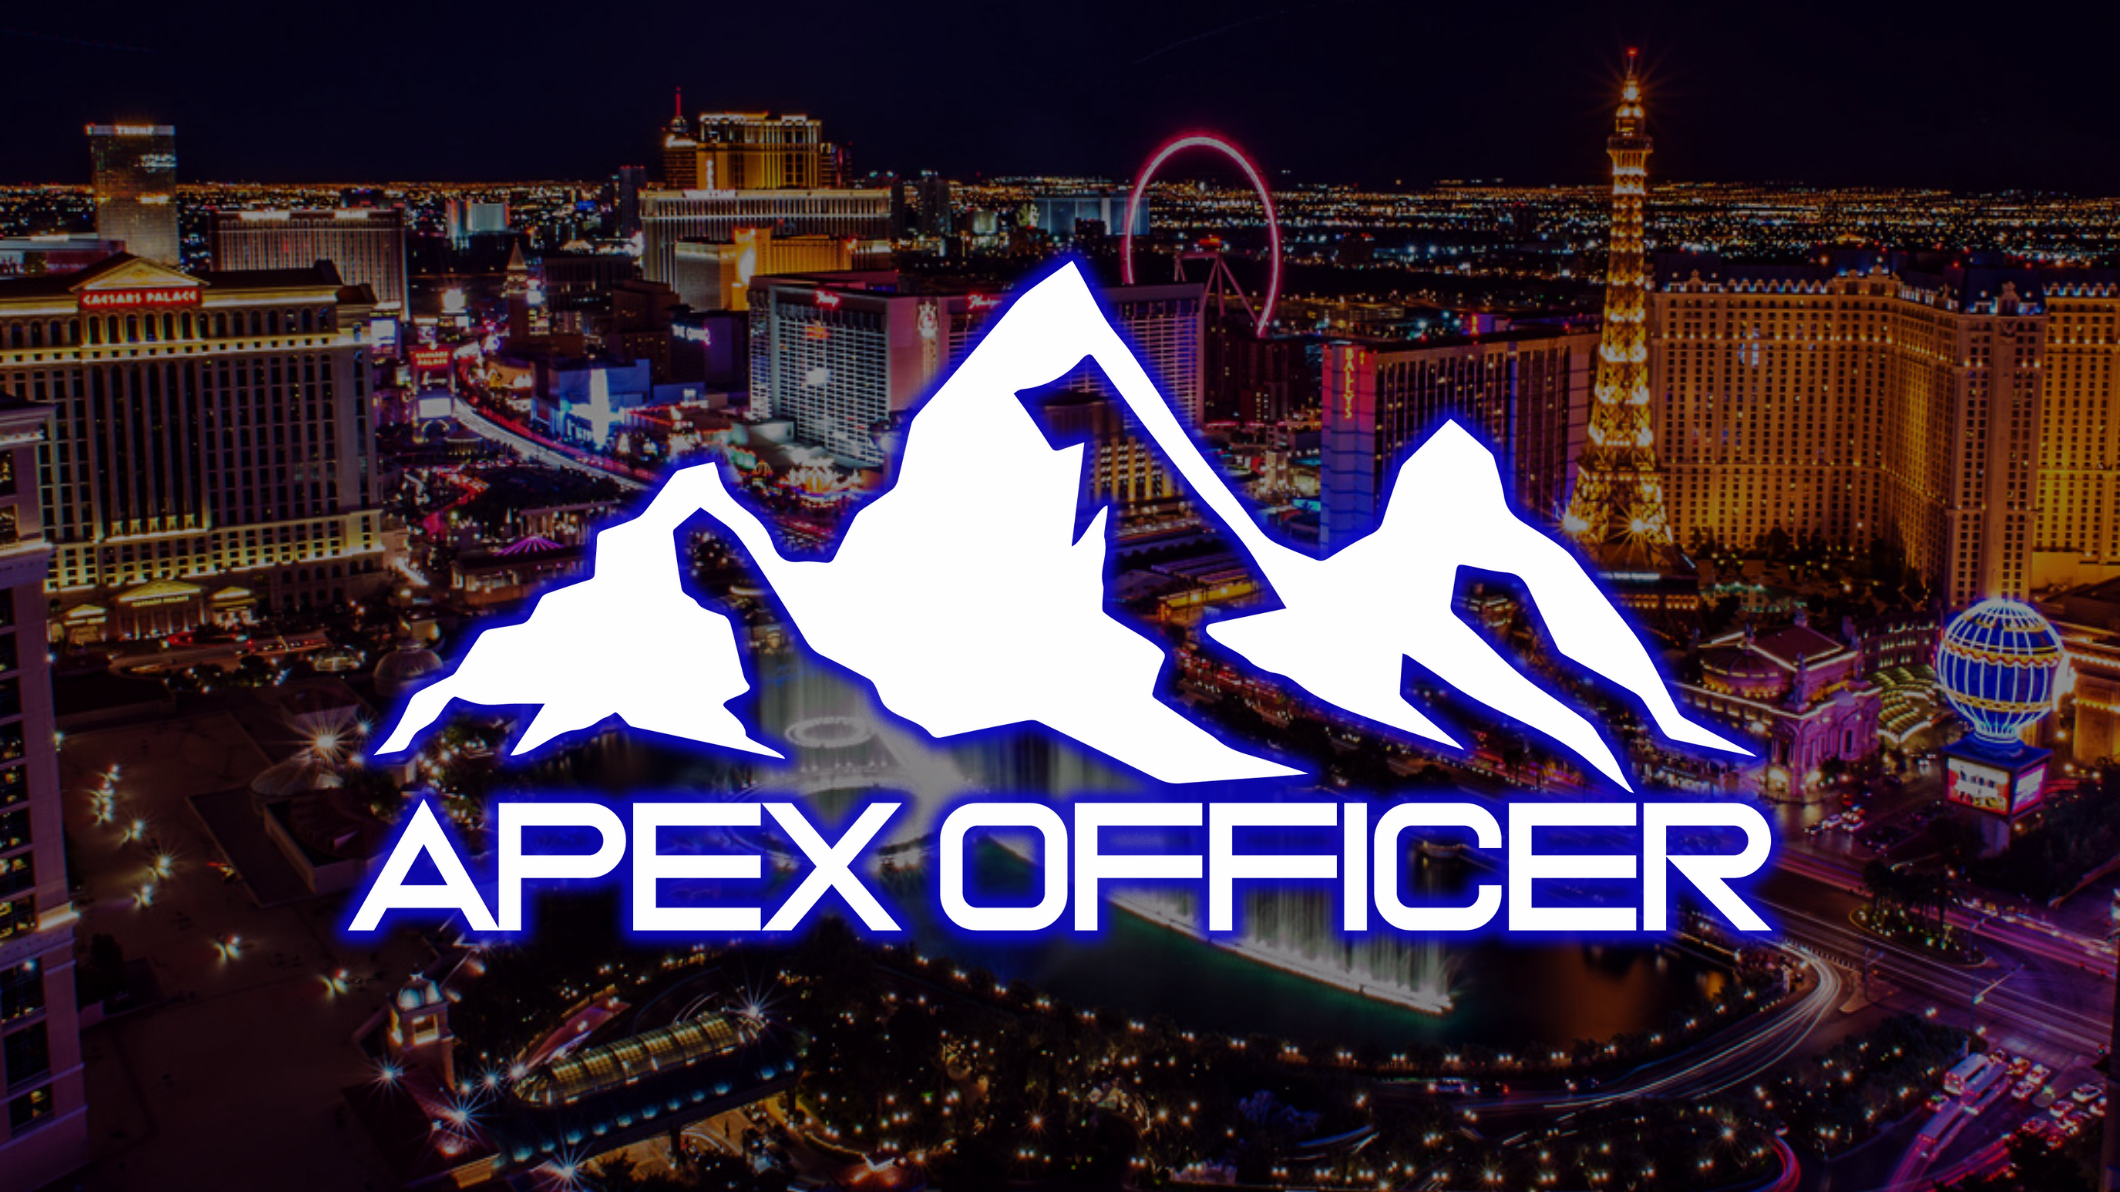 Apex Officer is the leading provider of VR training technology for police departments.